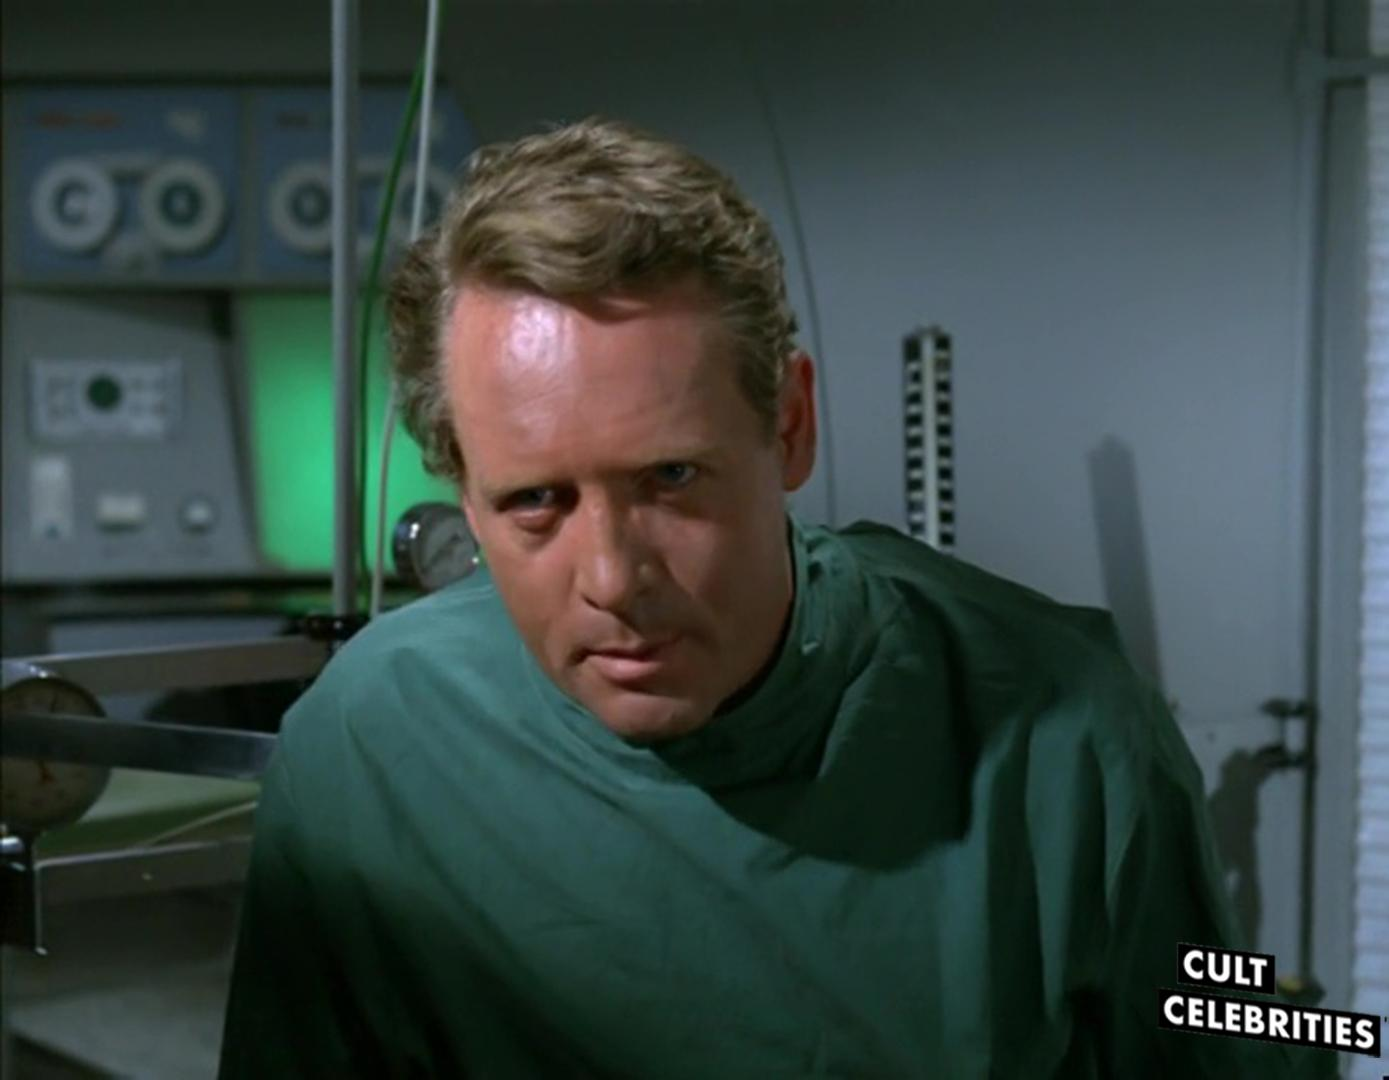 Patrick McGoohan in The Prisoner S01E12 - Do Not Forsake Me Oh My Darling